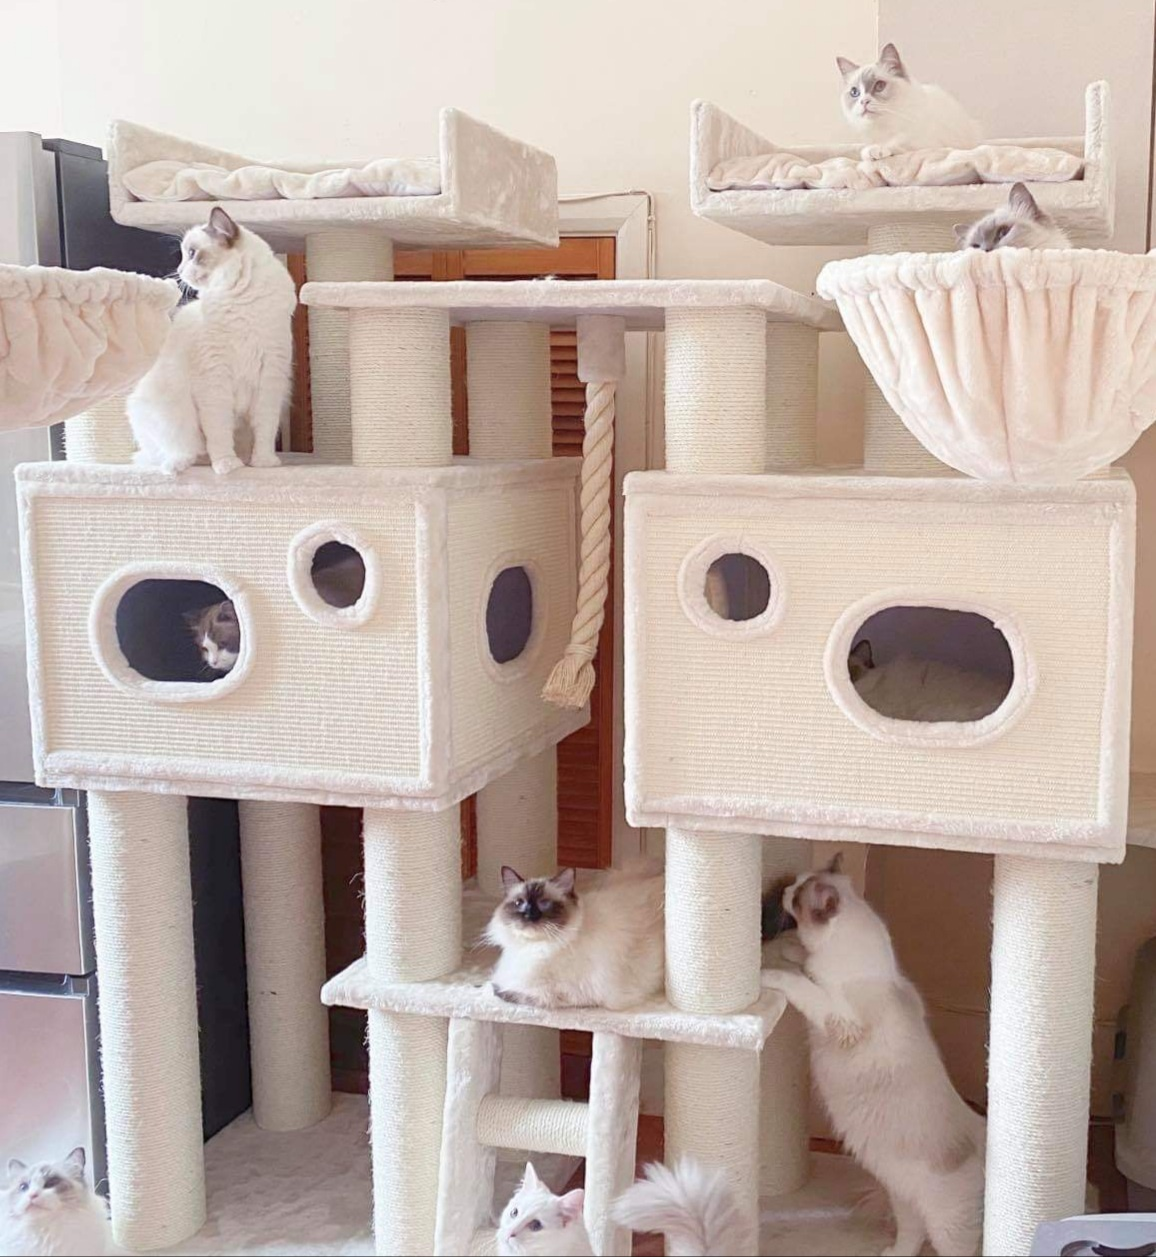 Royal cat Palace